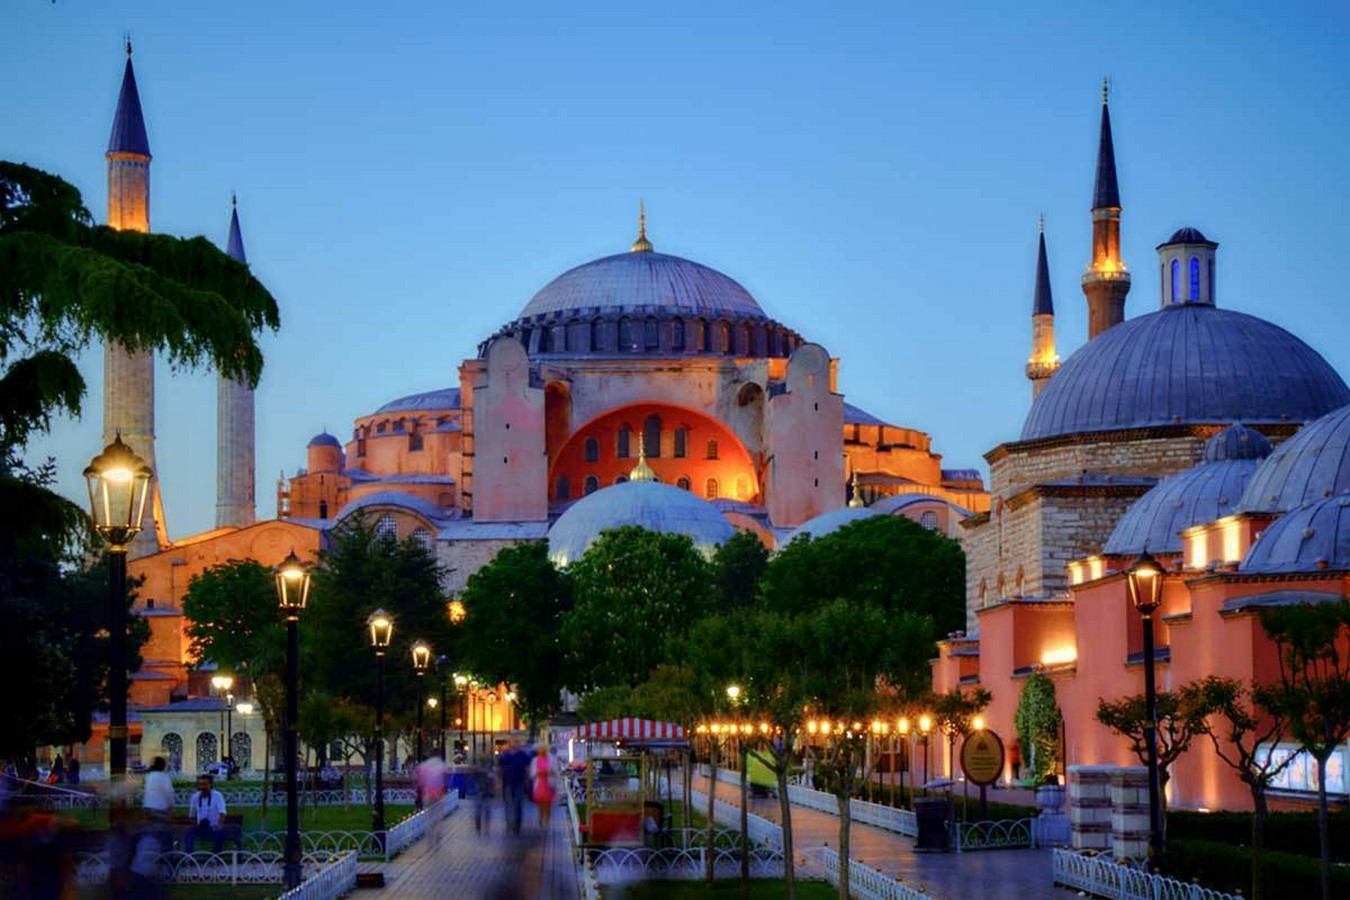 10 things you didn't know about Hagia Sophia - Sheet15